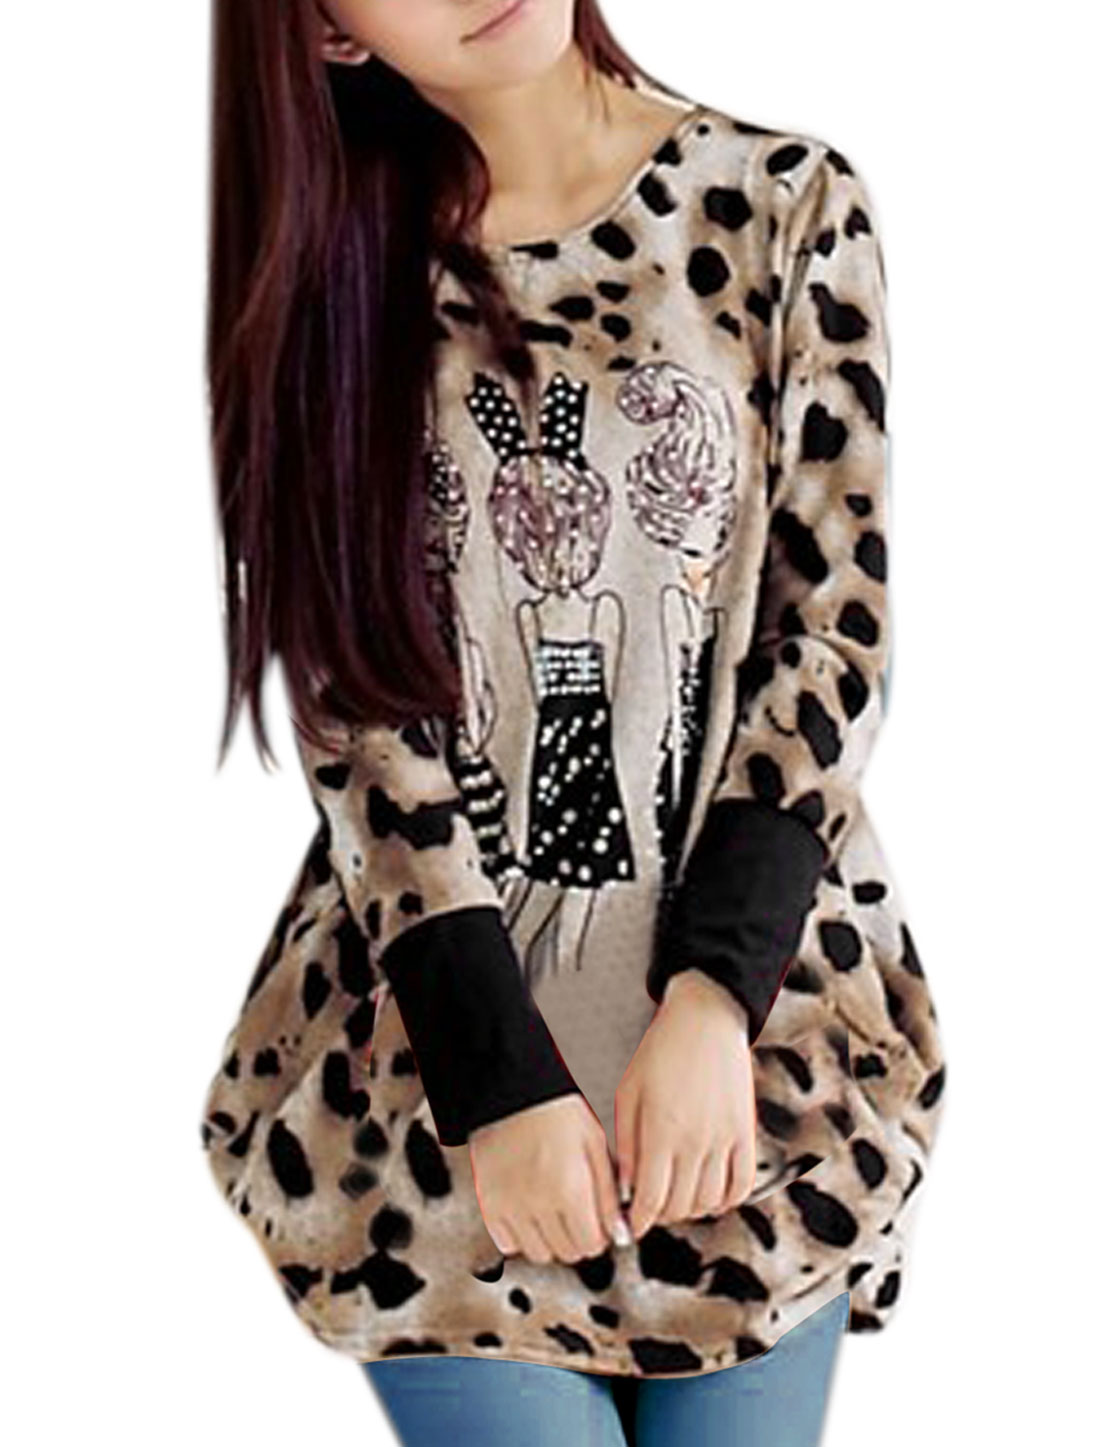 Woman's Khaki Leopard Prints Cartoon Pattern Fashionable Top Shirt S